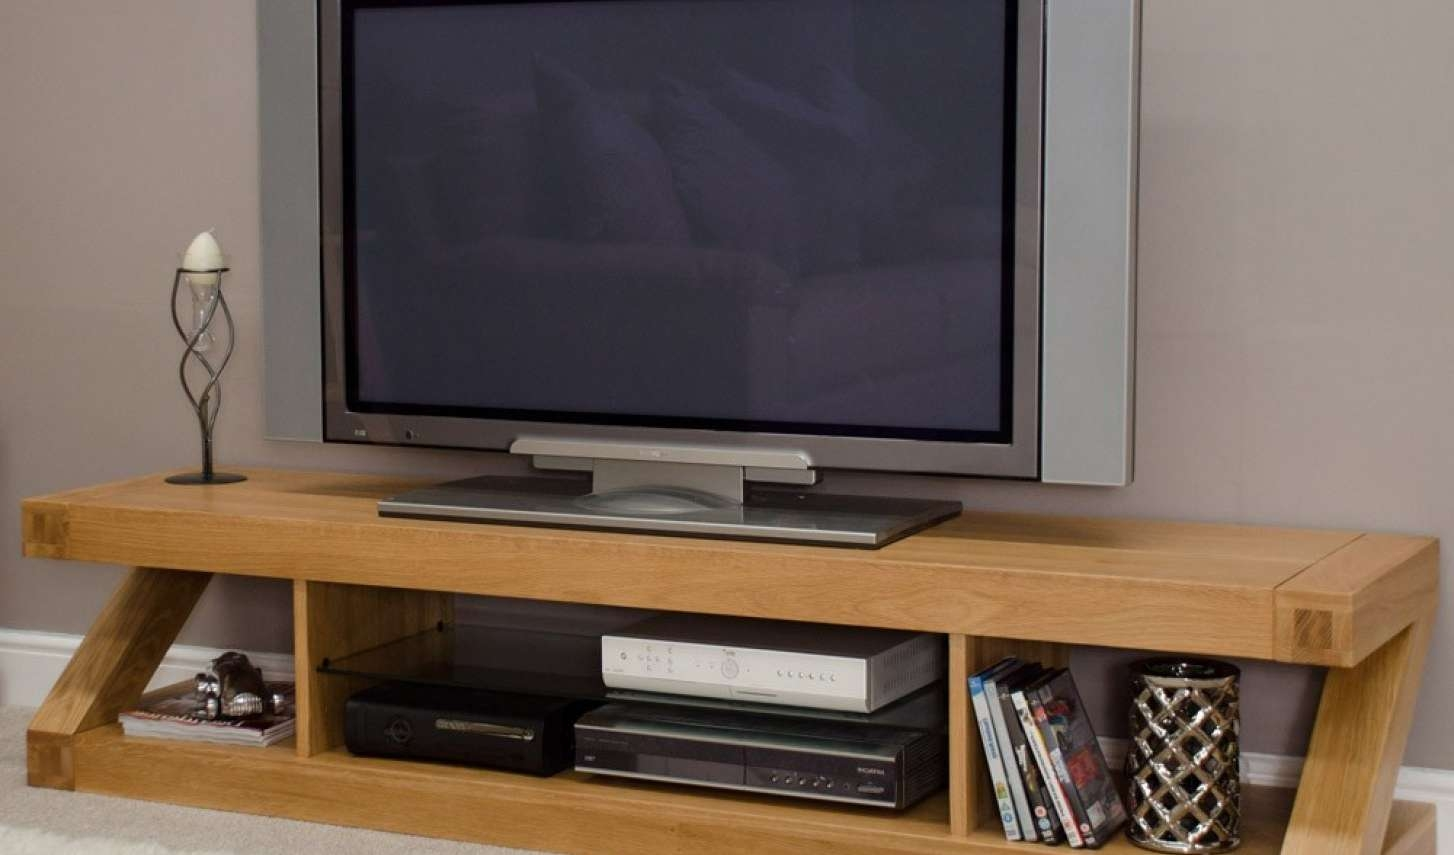 Enthrall 24 Inch Corner Tv Stands Tags : 24 Inch Corner Tv Stands Inside 24 Inch Corner Tv Stands (View 12 of 15)